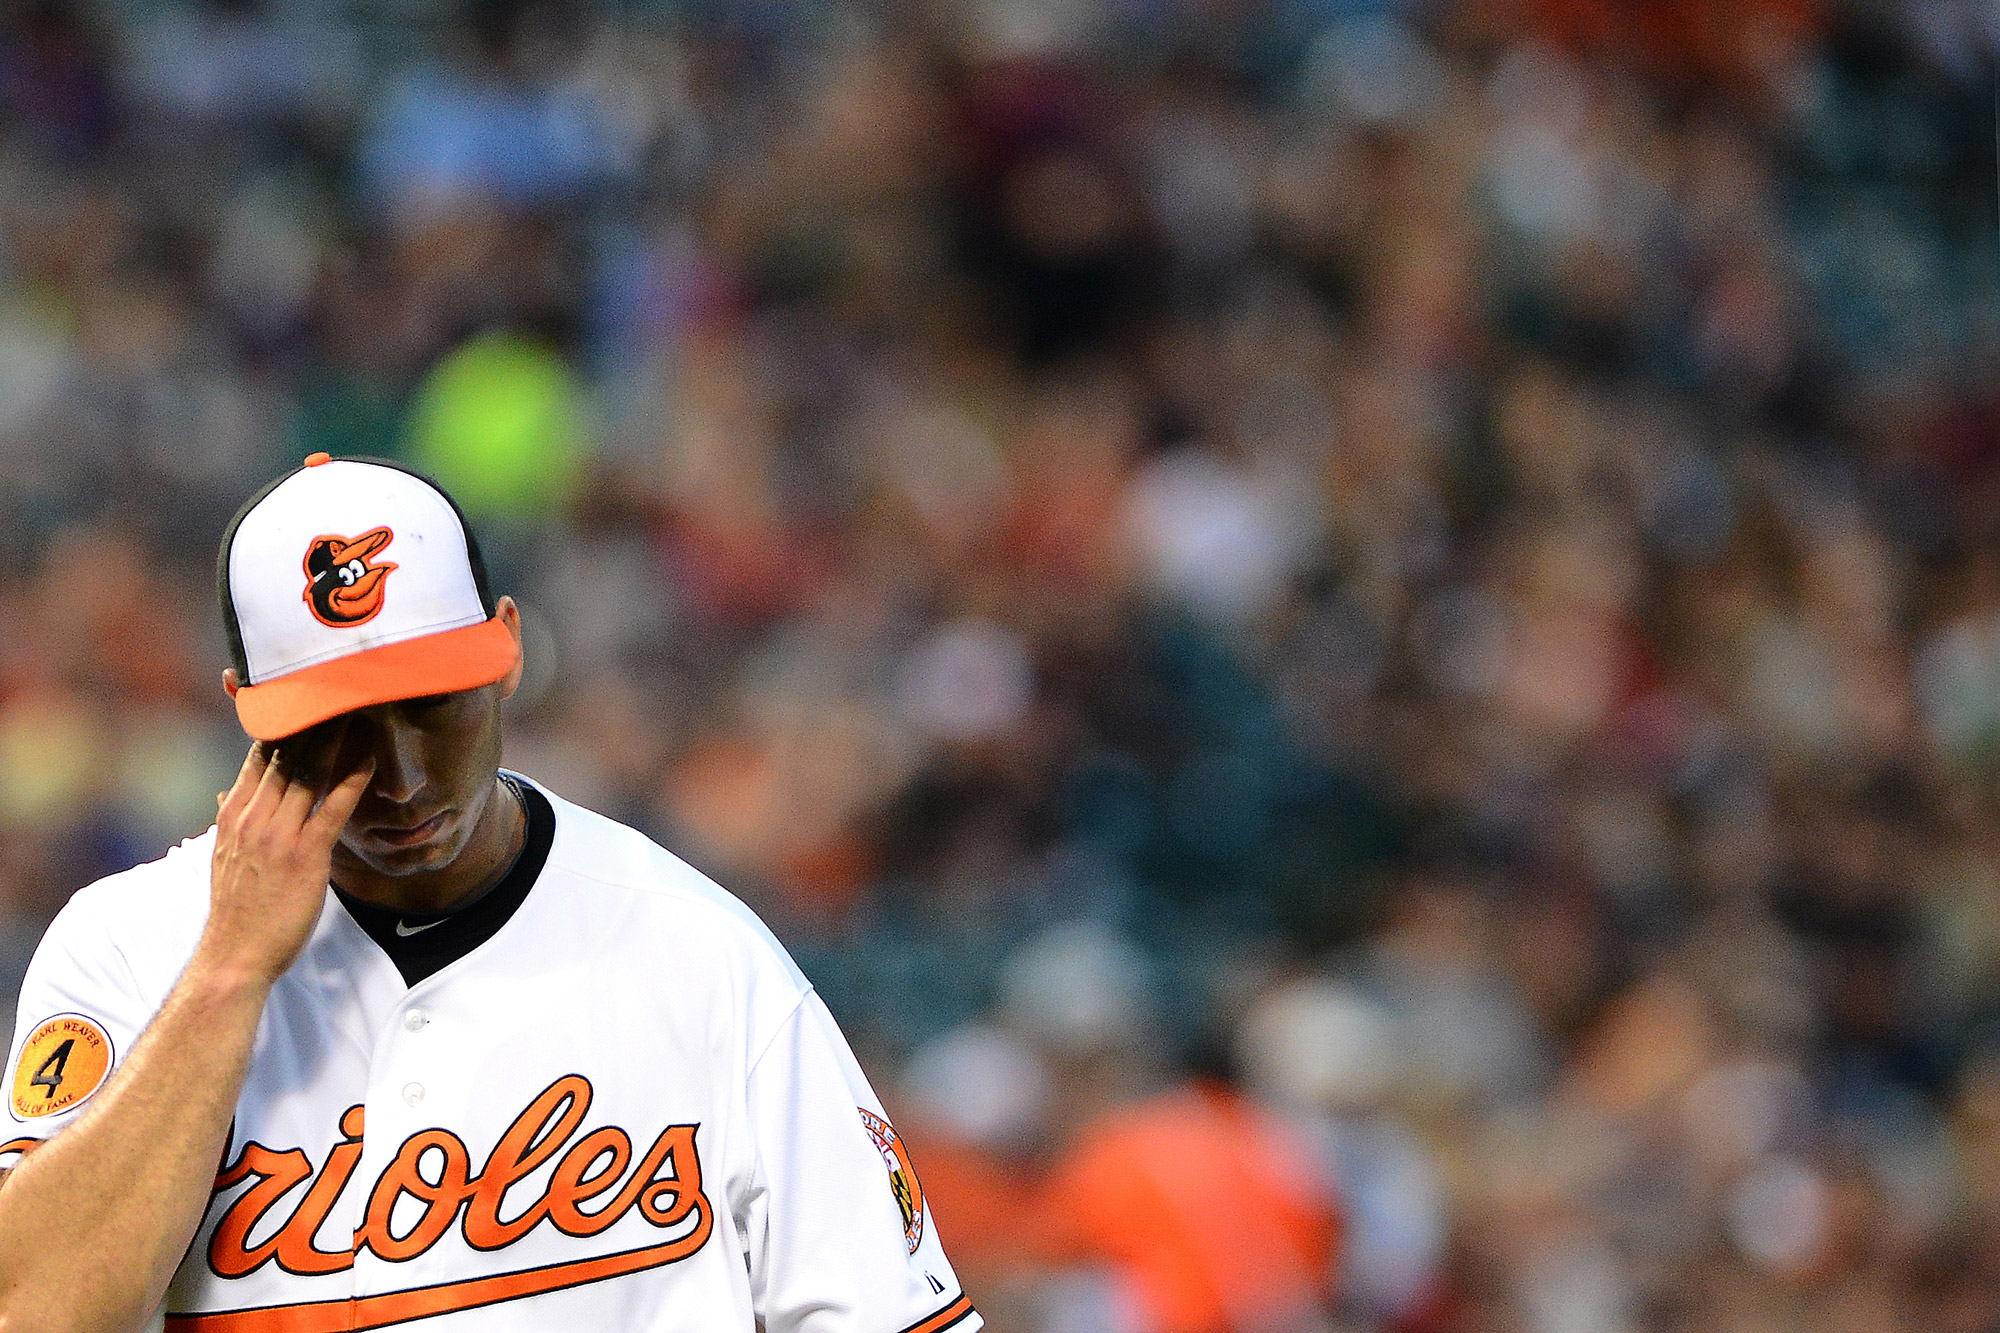 Baltimore Orioles pitcher Miguel Gonzalez wipes his brow after being pulled from the game in the 5th inning on May 21, 2013 at Oriole Park at Camden Yards in Baltimore, Md.